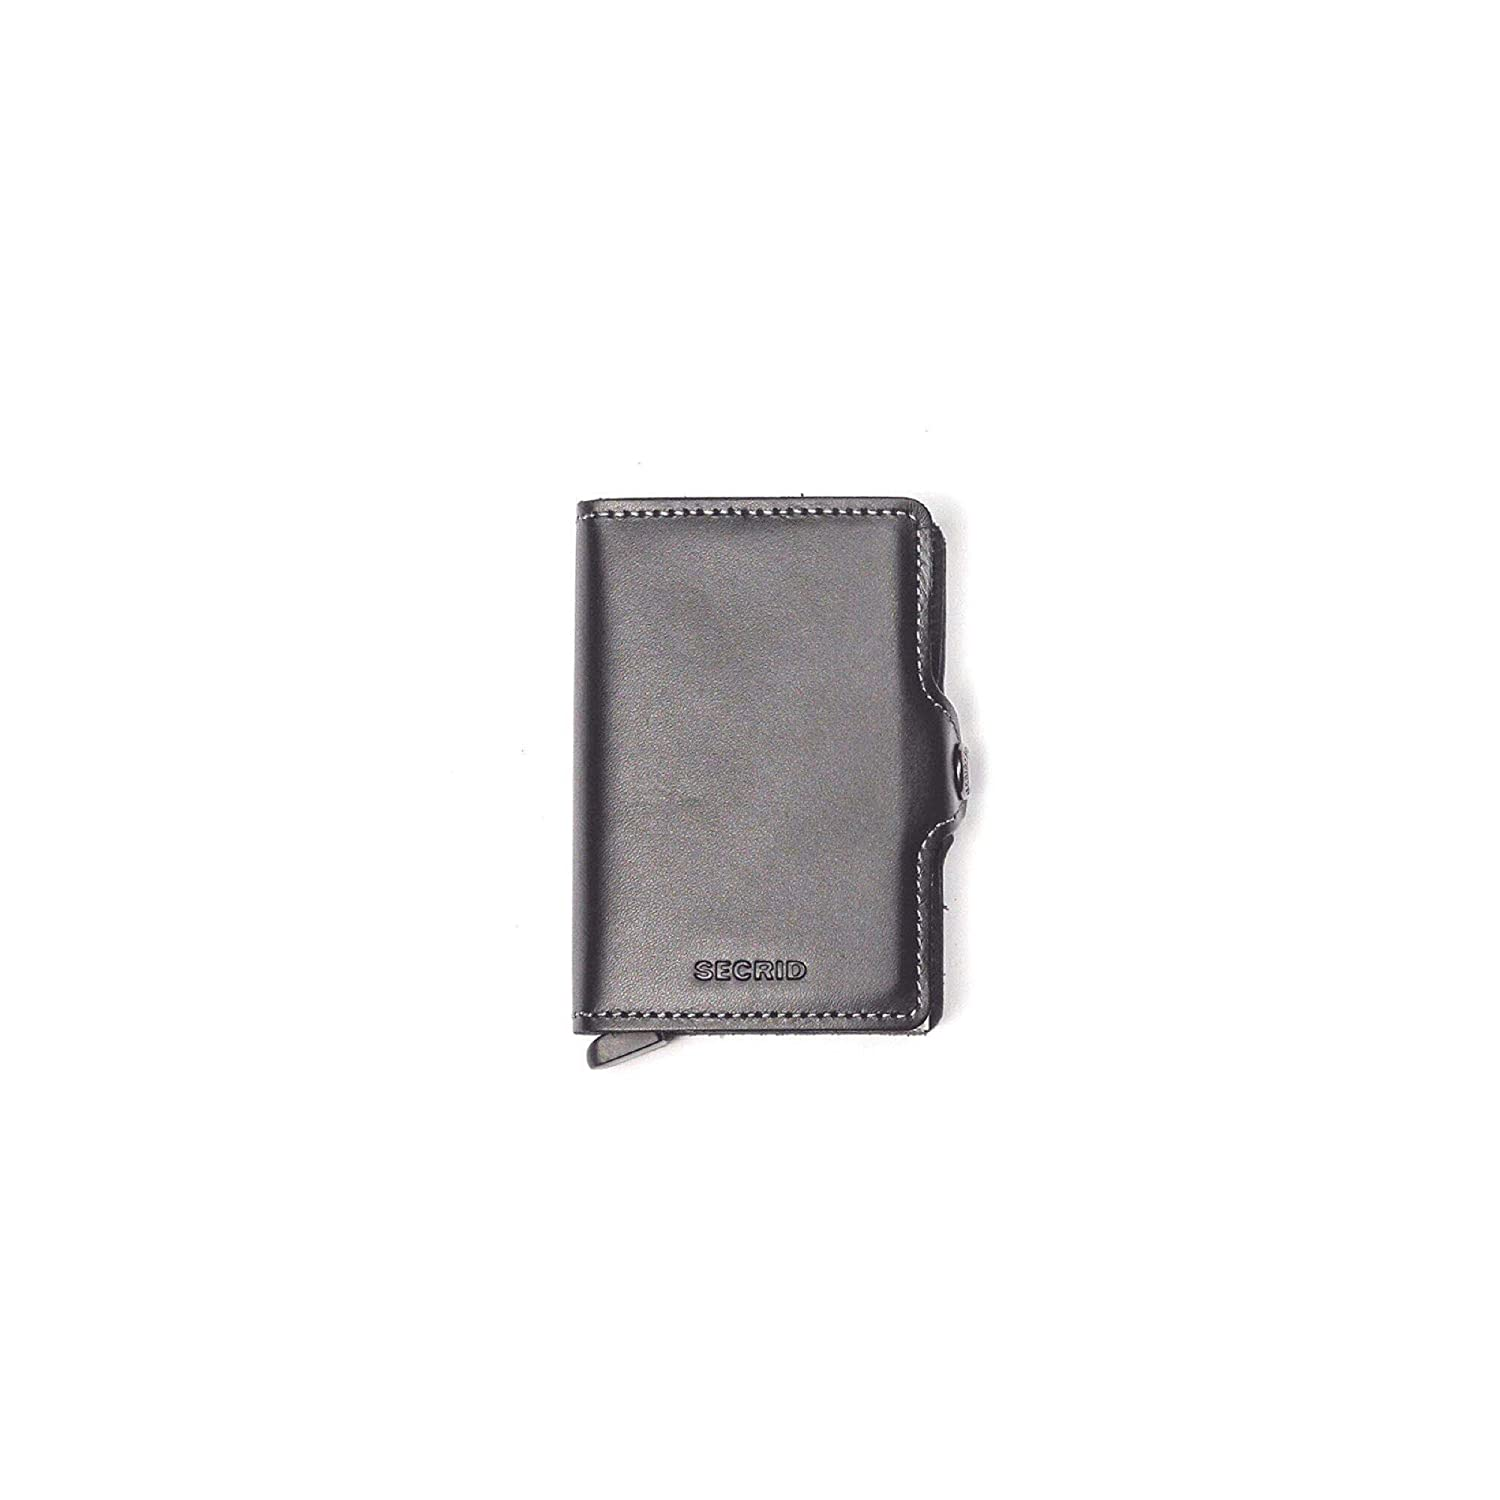 3a5a0444750 Secrid Wallets Twinwallet Original 10 cm black: Amazon.de: Bürobedarf &  Schreibwaren